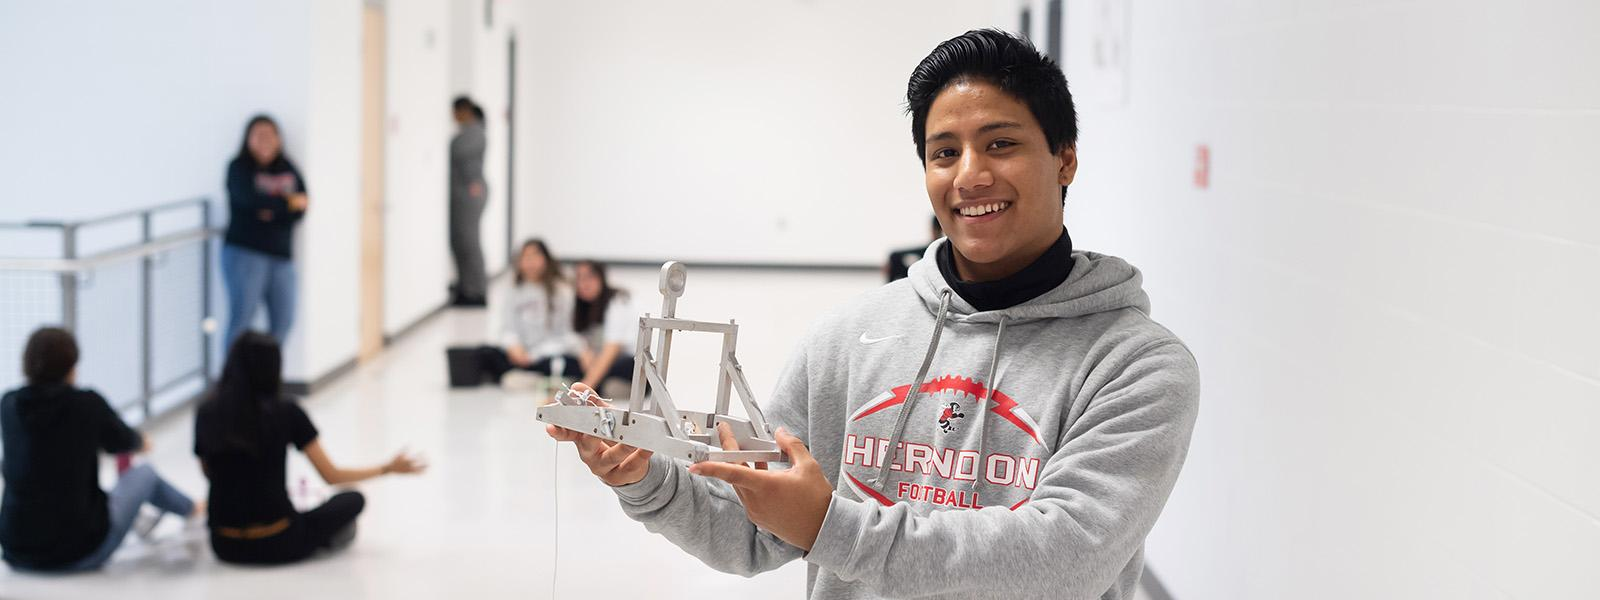 Building on what they learned in physics class, Herndon High School students designed and constructed catapults.